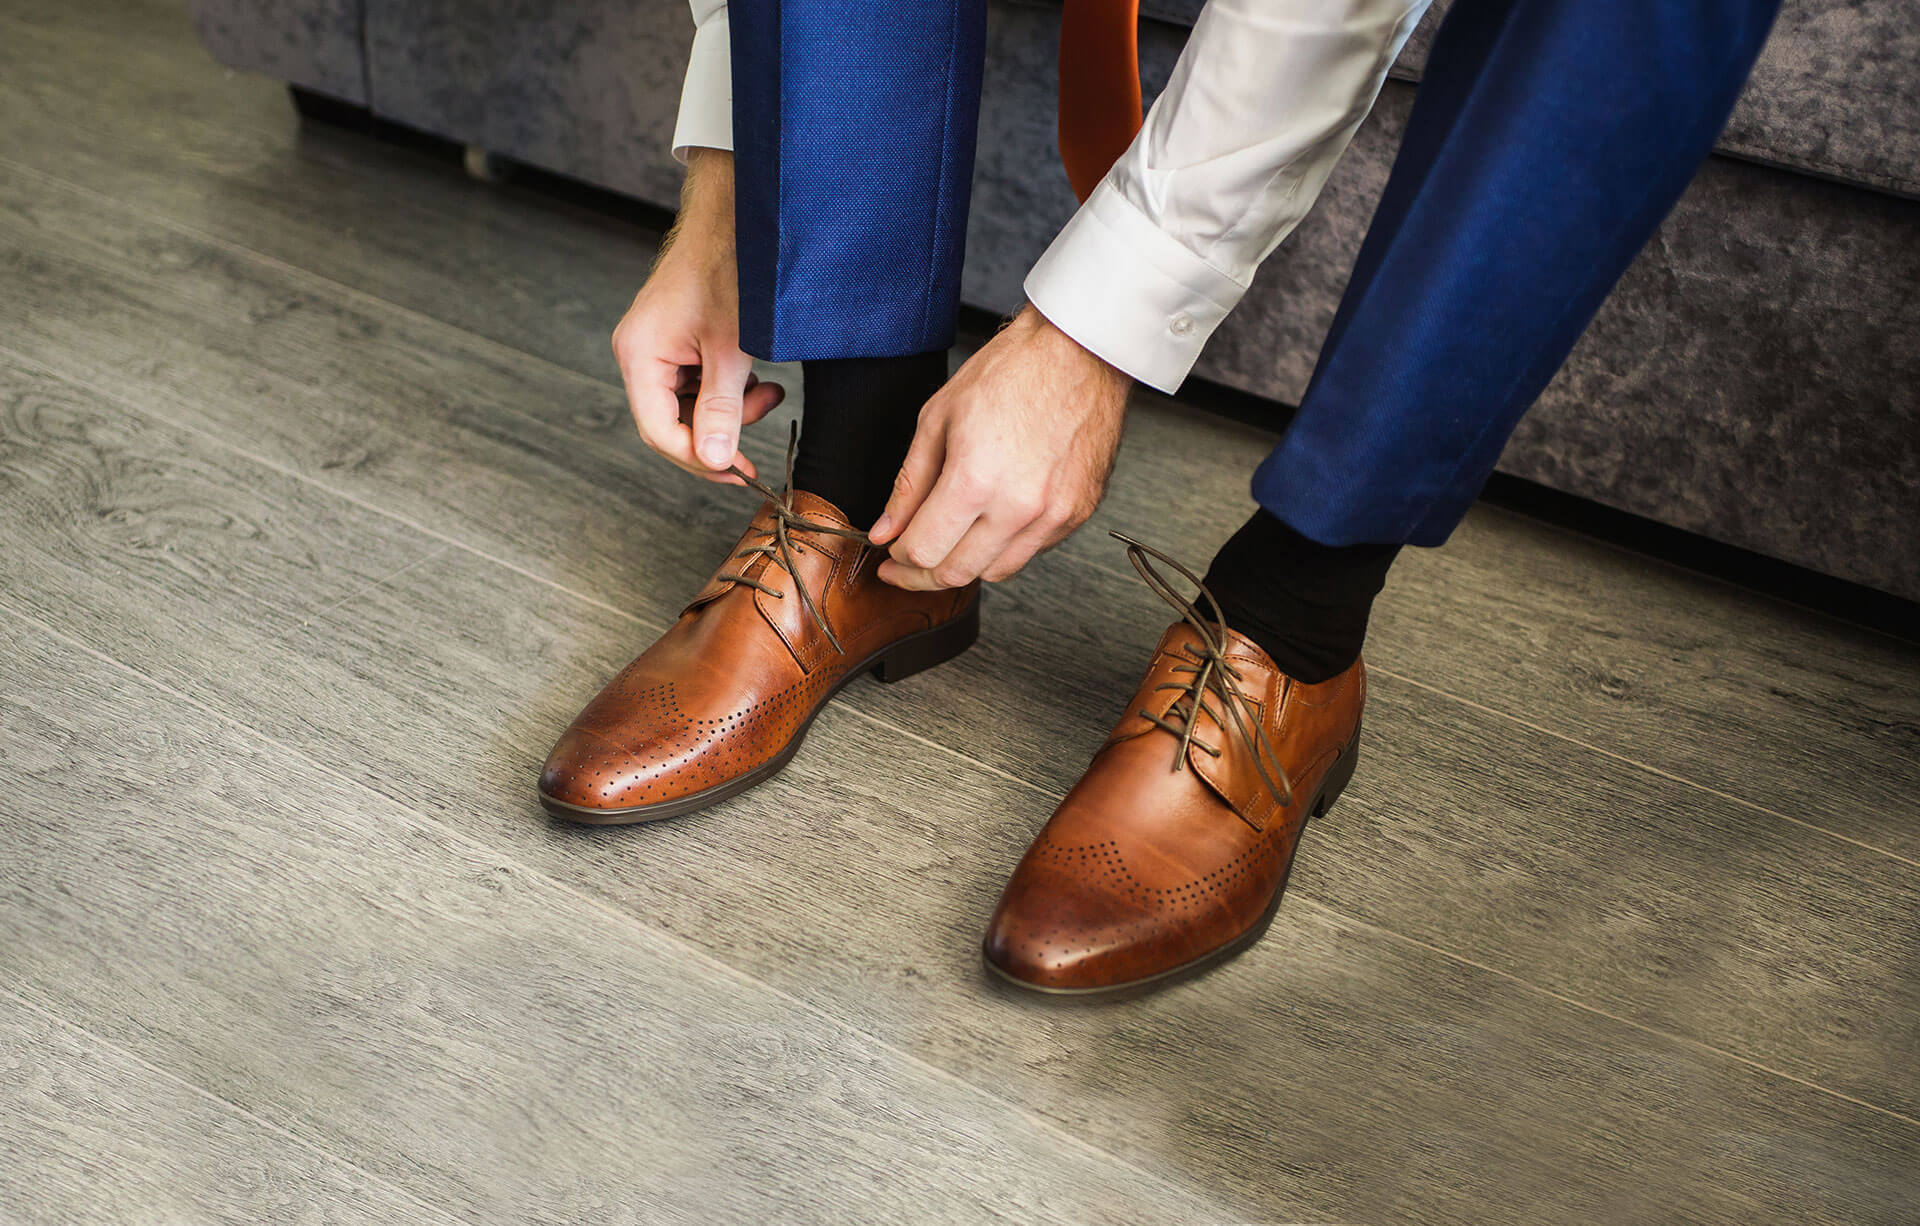 Men Shoes: 2 Types of Must Haves And 15 Examples recommendations